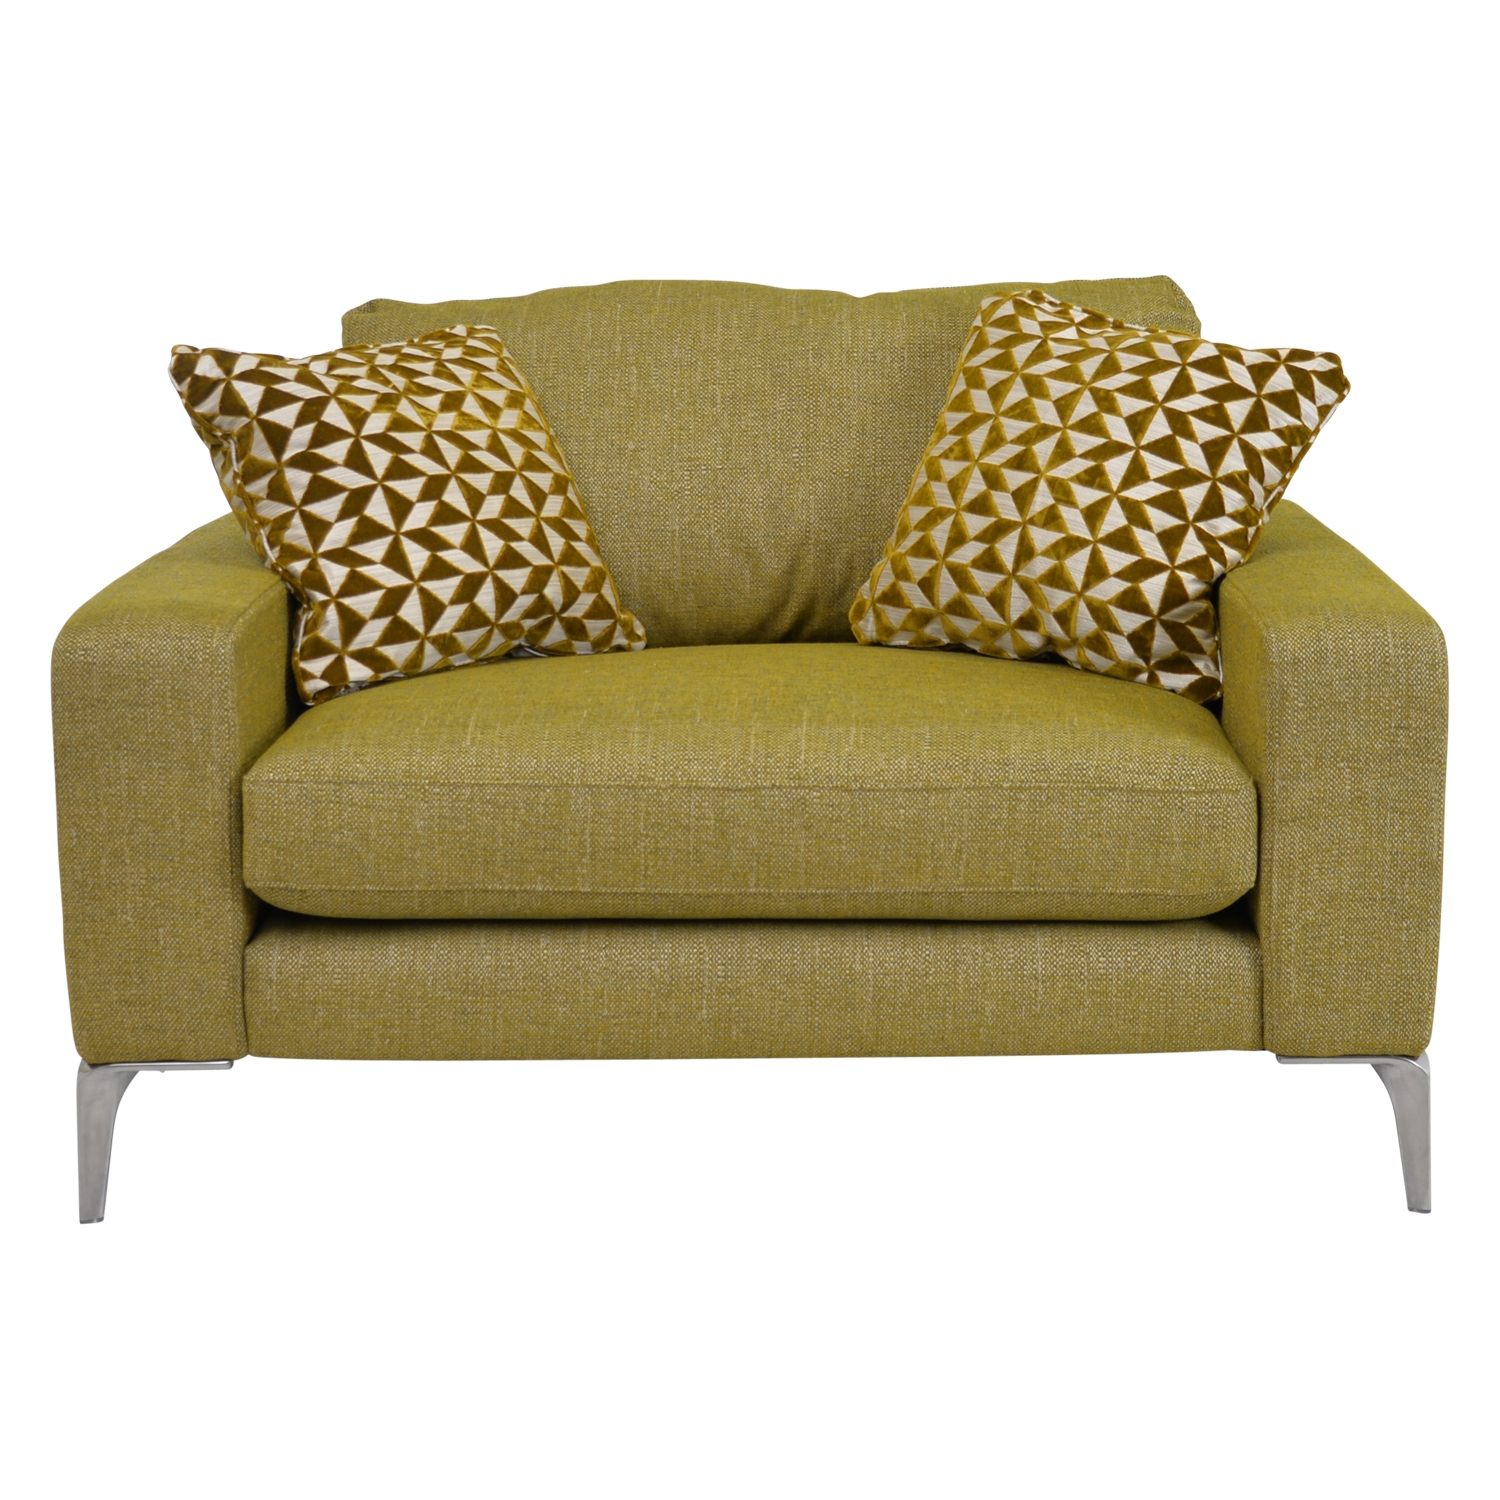 1 Seater Fabric Brown Cuddler Swivel Chair With Regard To Cuddler Swivel Sofa Chairs (View 3 of 15)